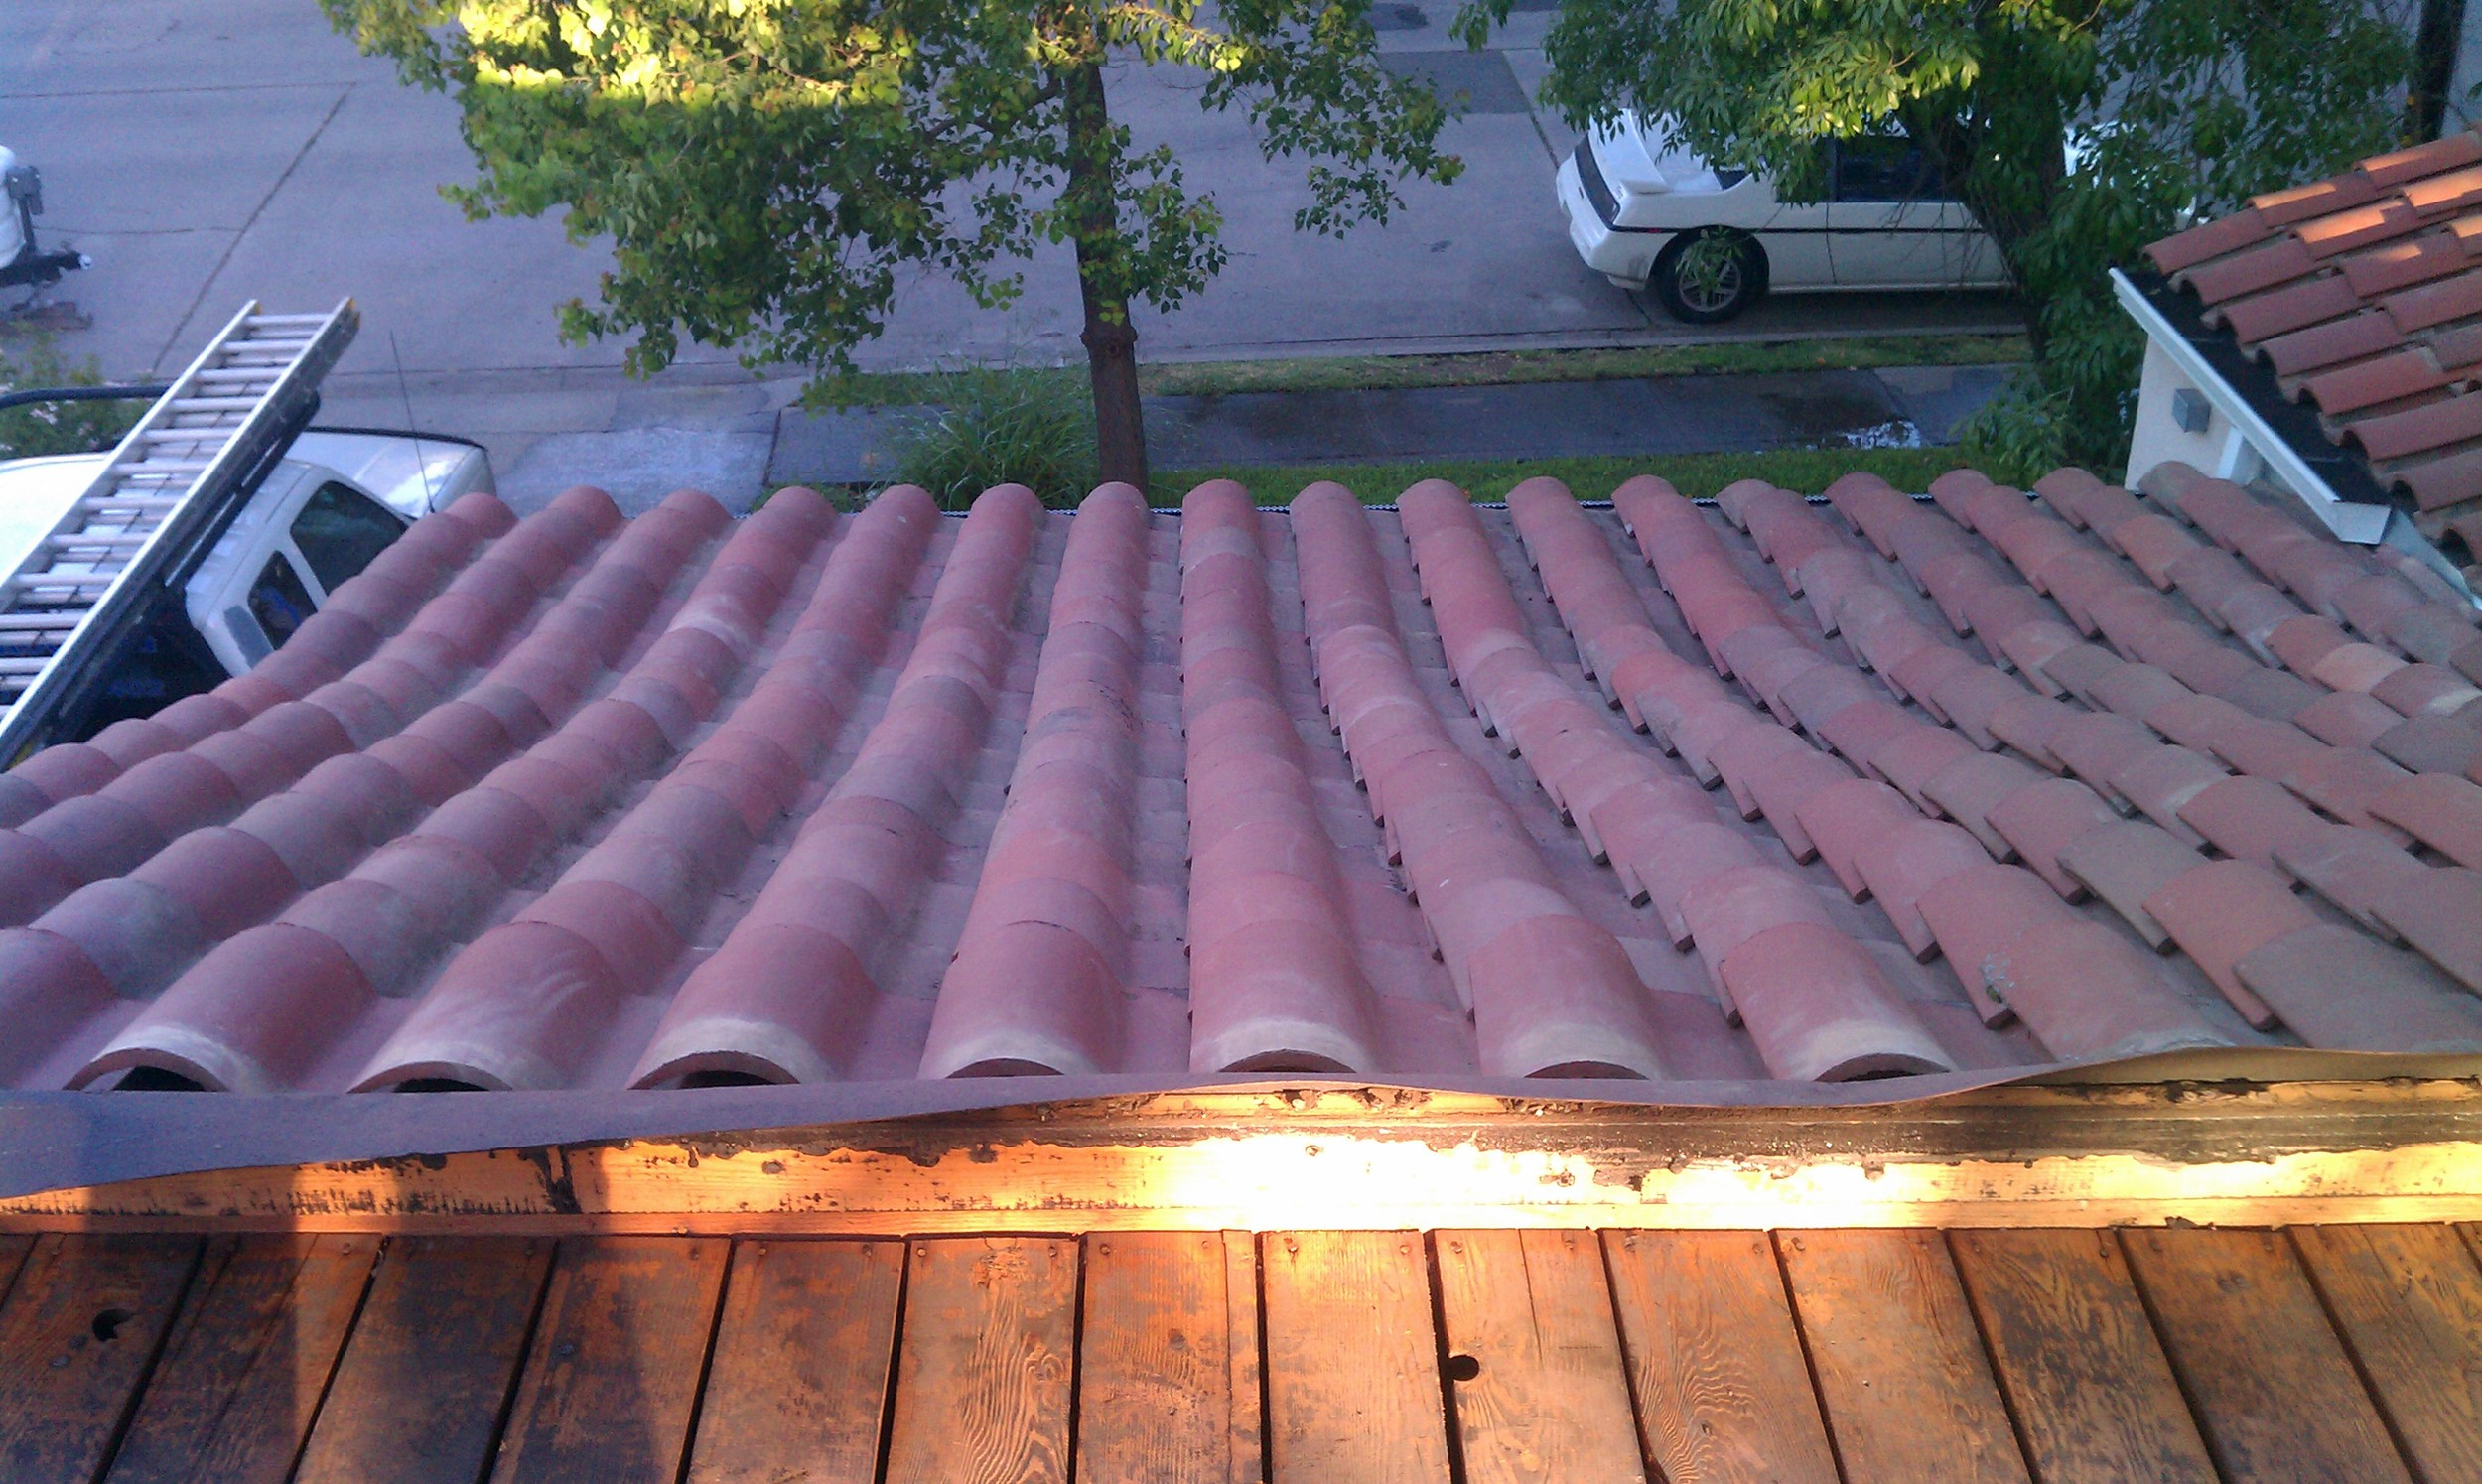 Completed Tile Roofing Project by Ved's Roofing of Yuba City, CA.